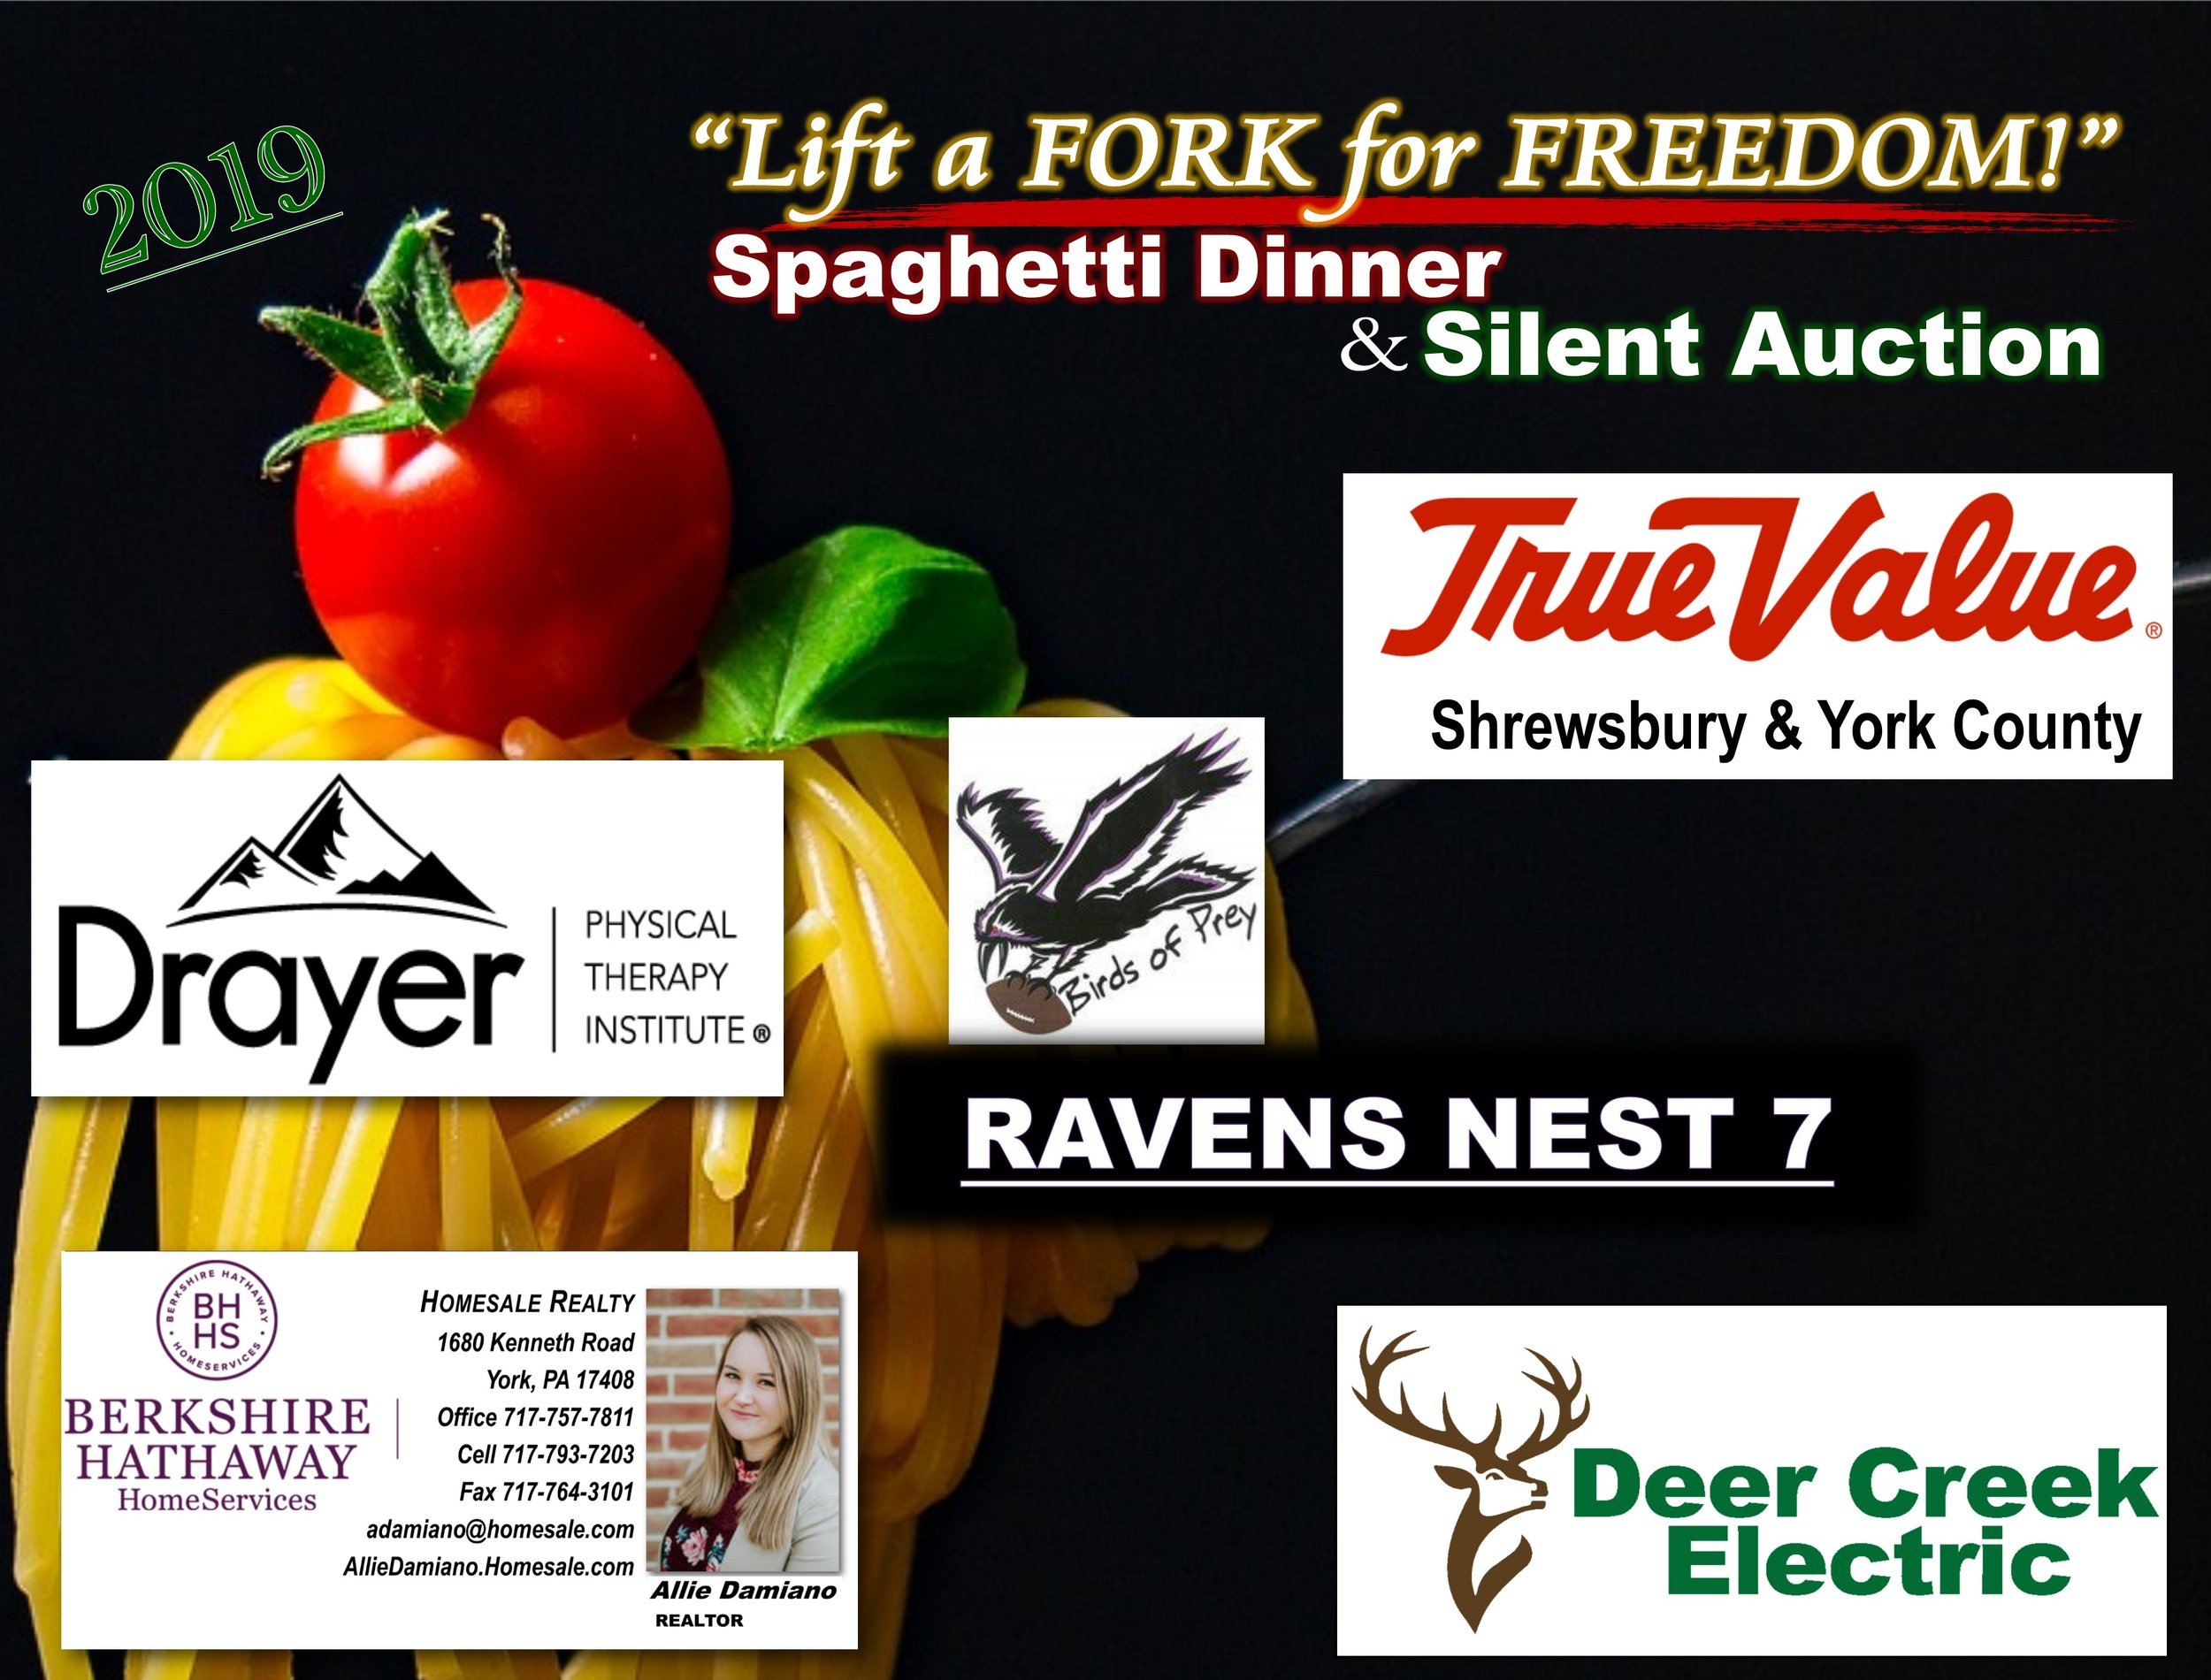 2019 Spaghetti Dinner & Silent Auction - SPONSORS -